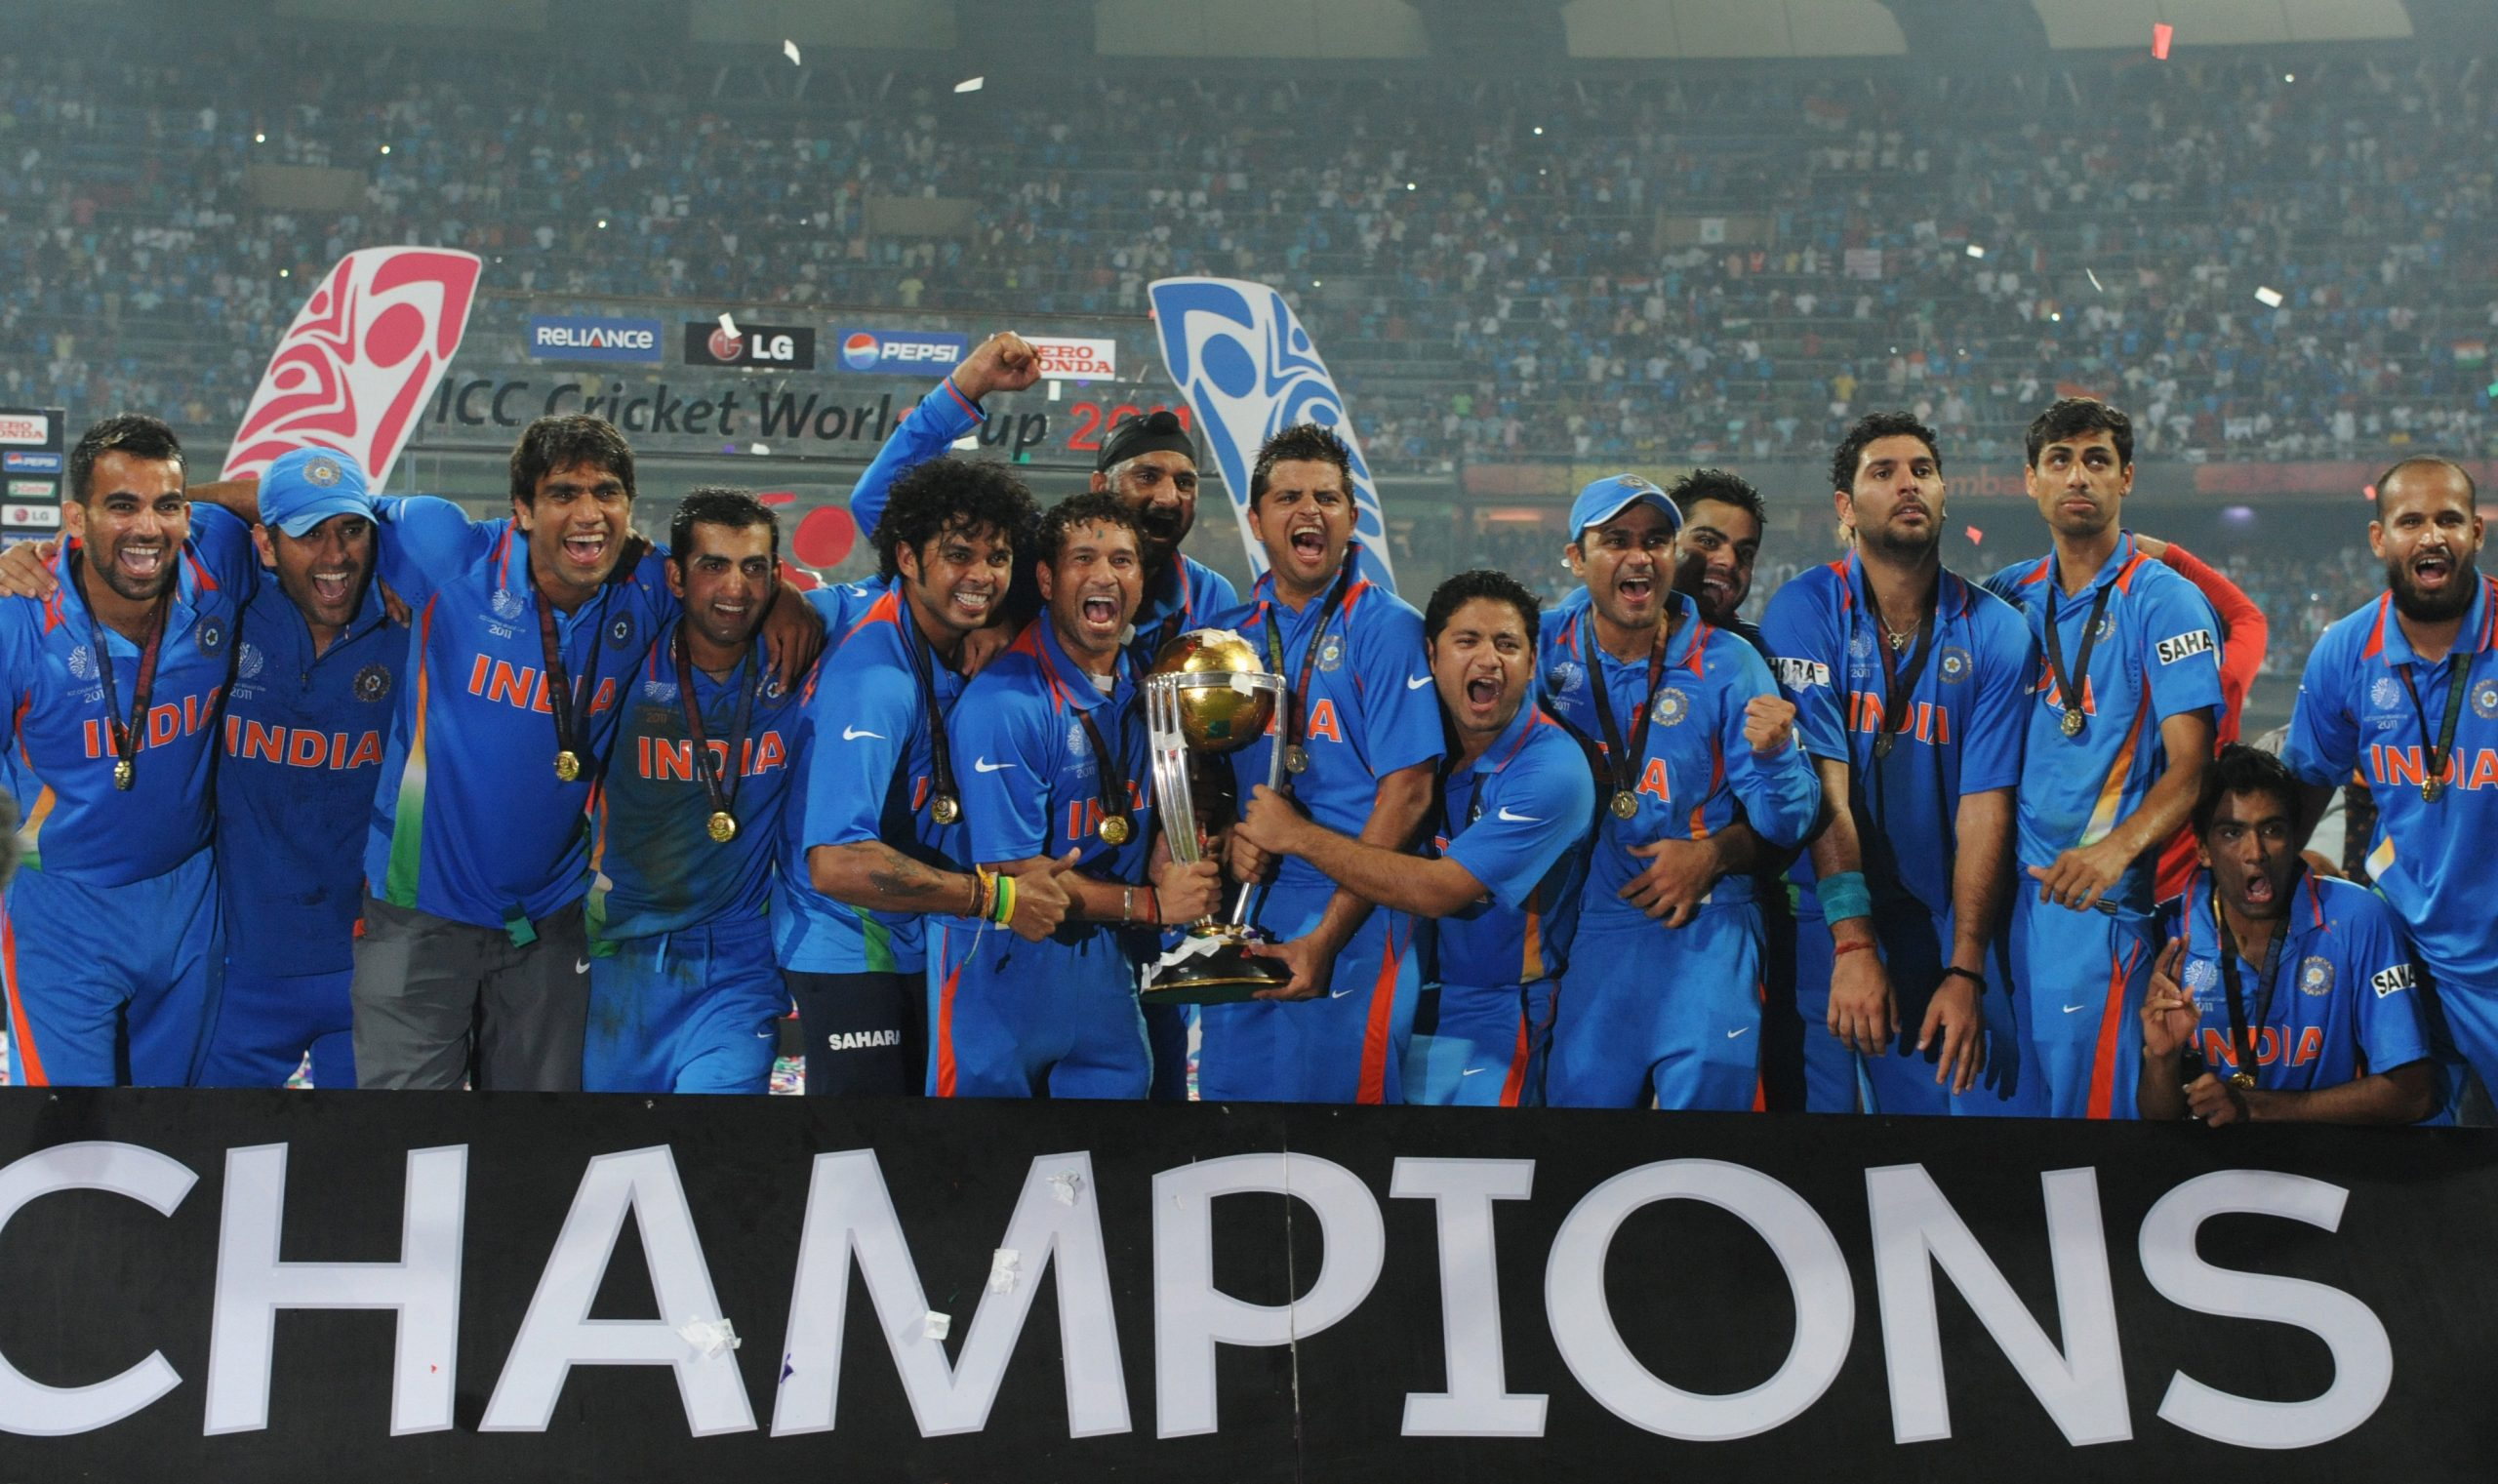 Indian cricketers pose with the trophy after victory in the Cricket World Cup 2011 final over Sri Lanka at The Wankhede Stadium in Mumbai on April 2, 2011. India beat Sri Lanka by six wickets.  AFP PHOTO/Indranil MUKHERJEE (Photo credit should read INDRANIL MUKHERJEE/AFP via Getty Images)